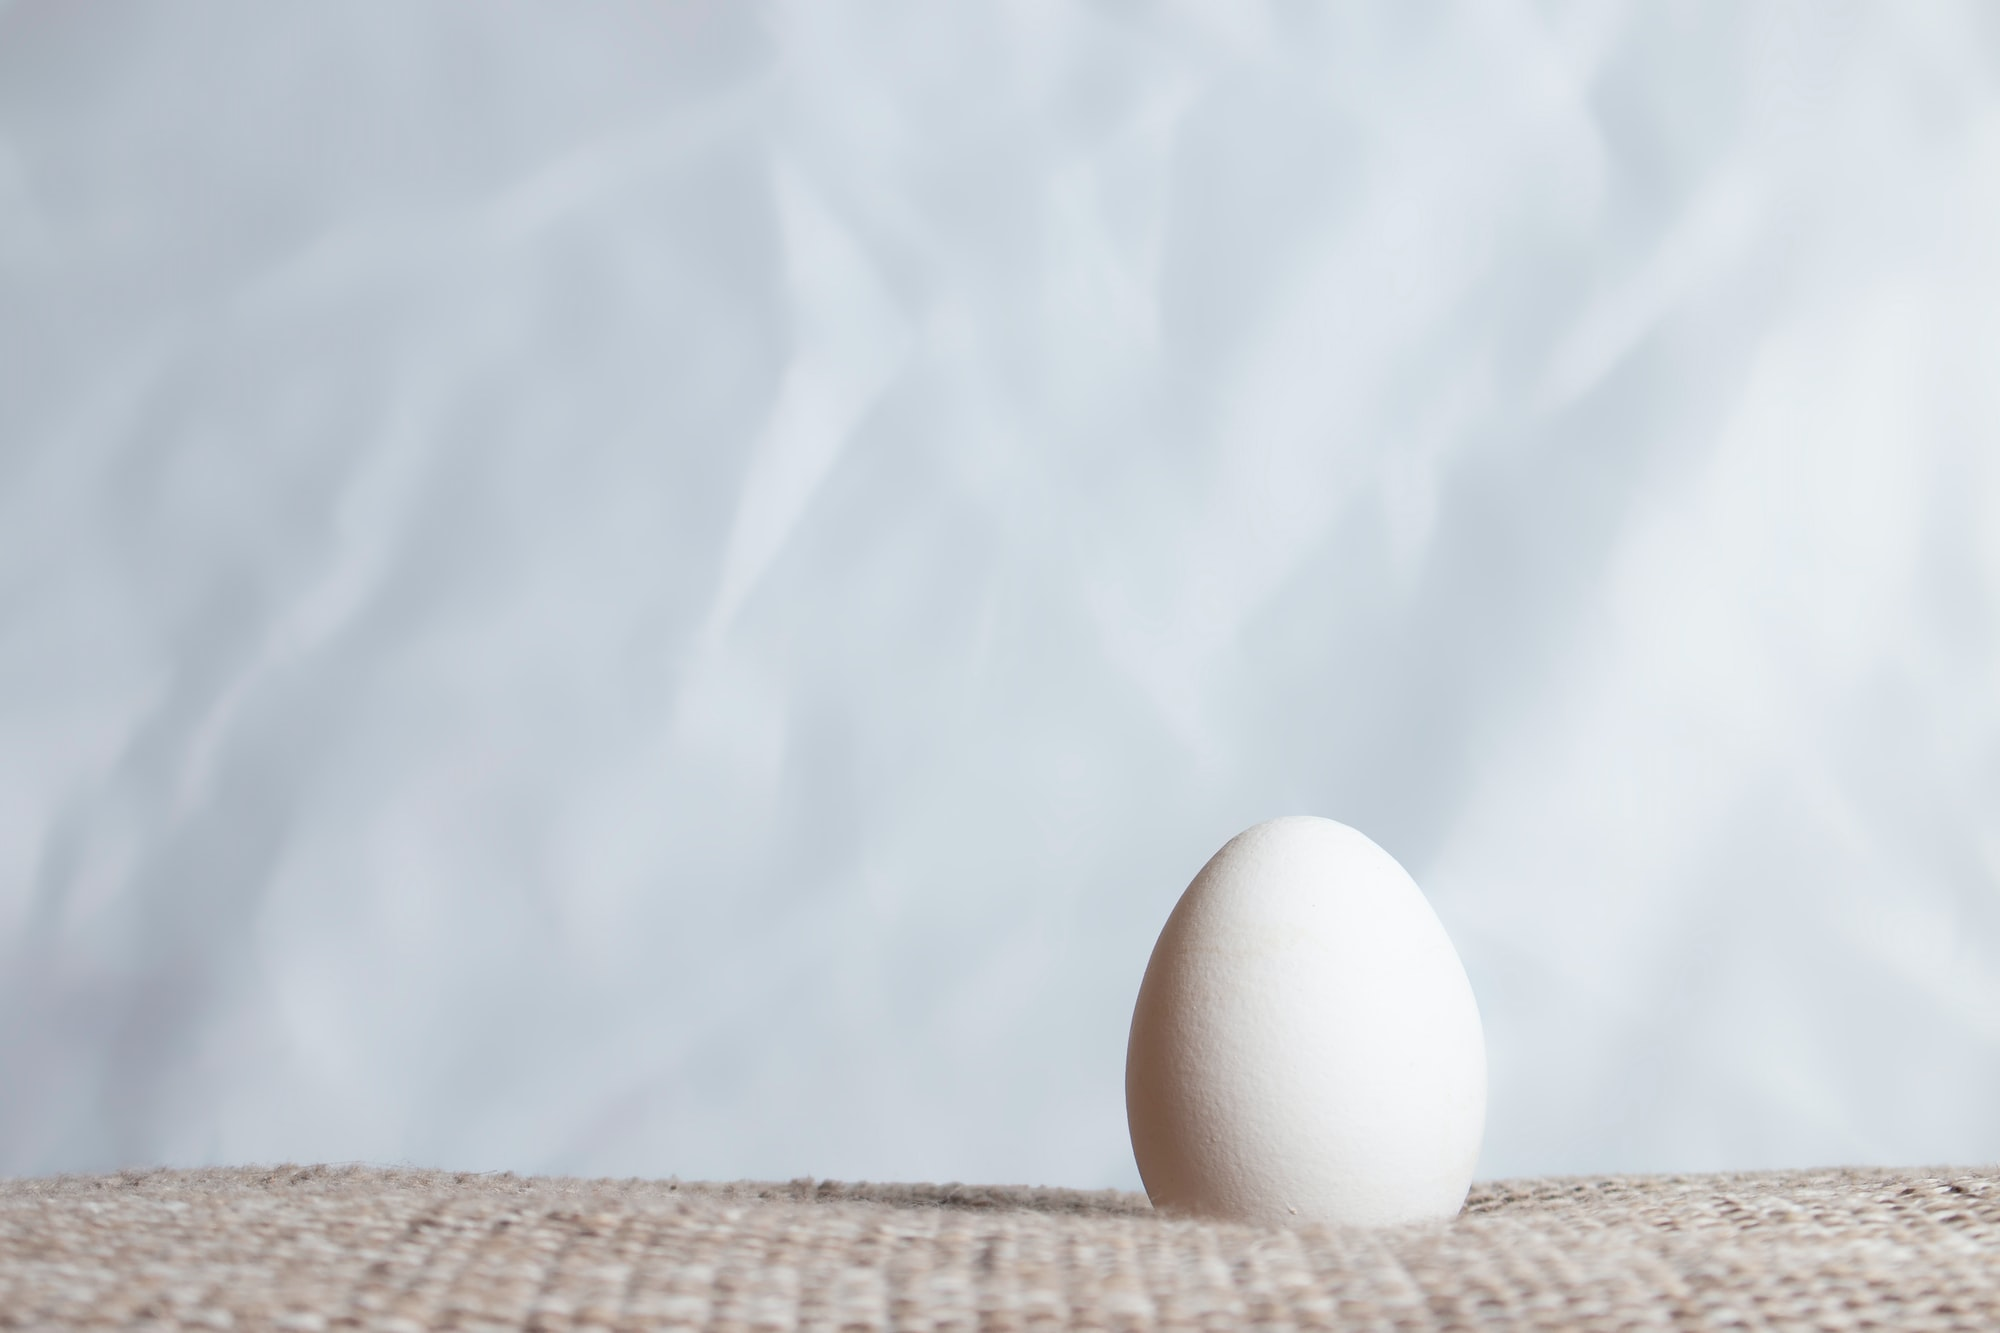 Lonely egg on a soft bottom in front of a crinkled white background